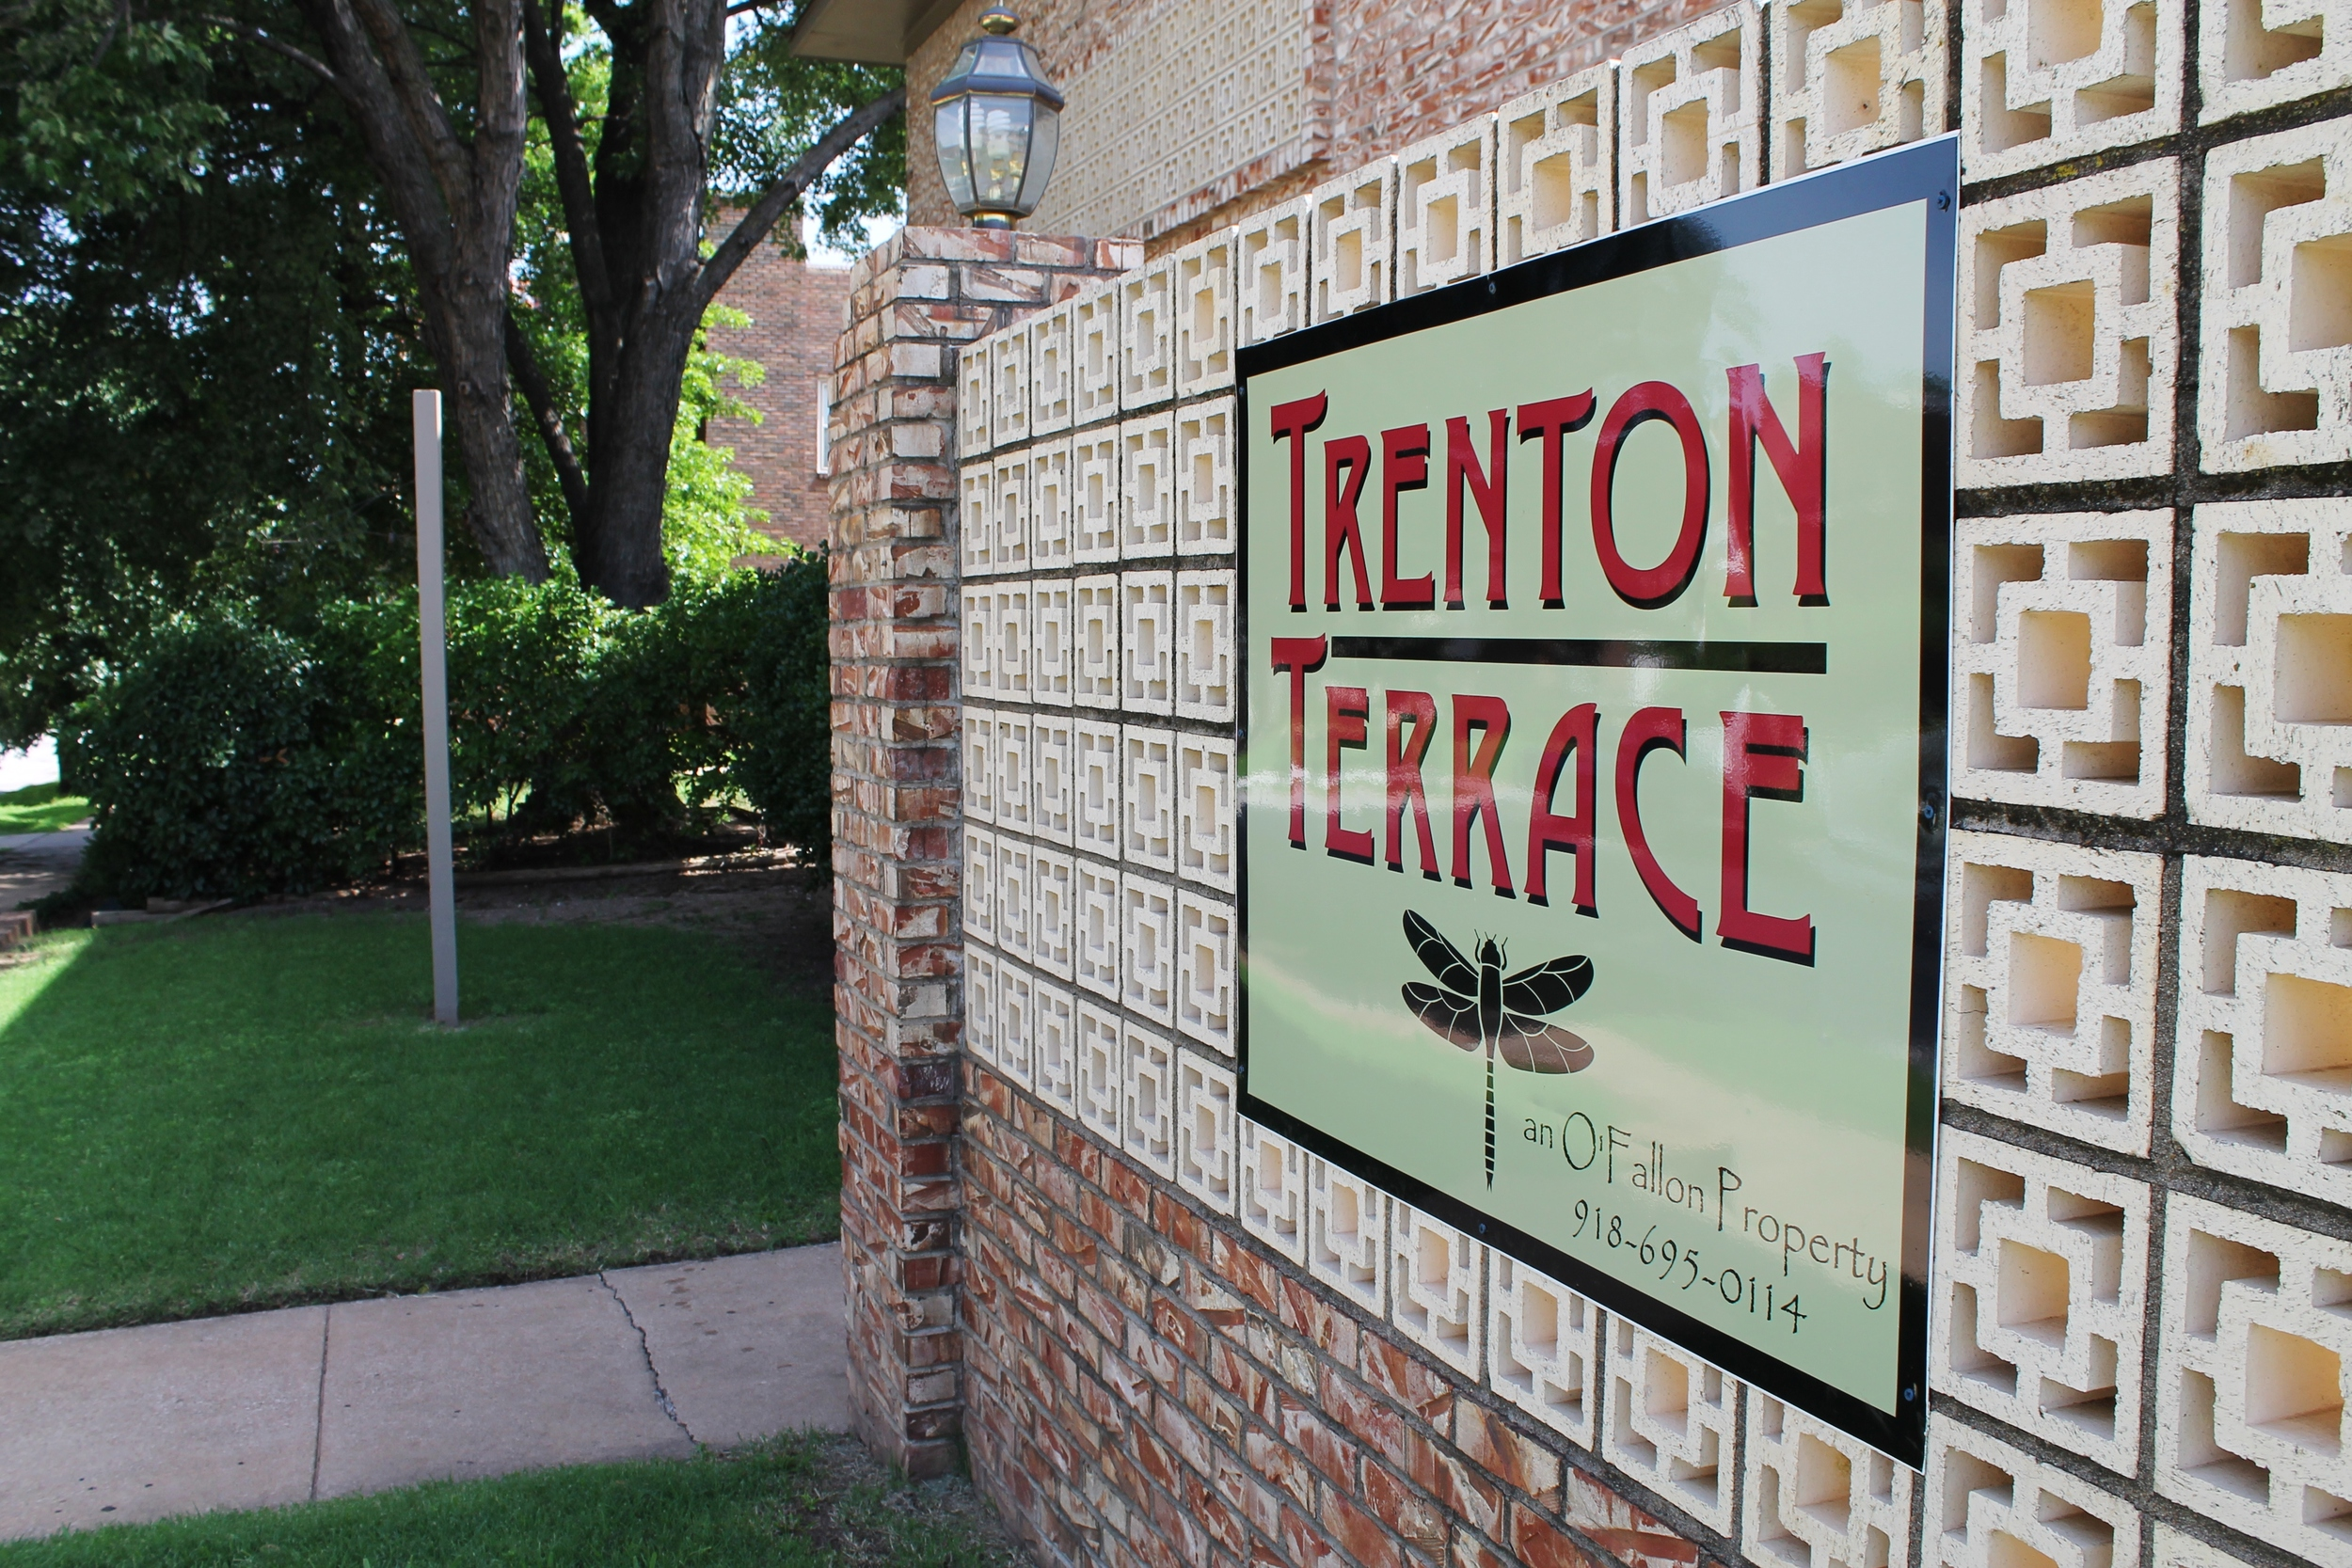 Trenton Terrace Apartments in Midtown Tulsa